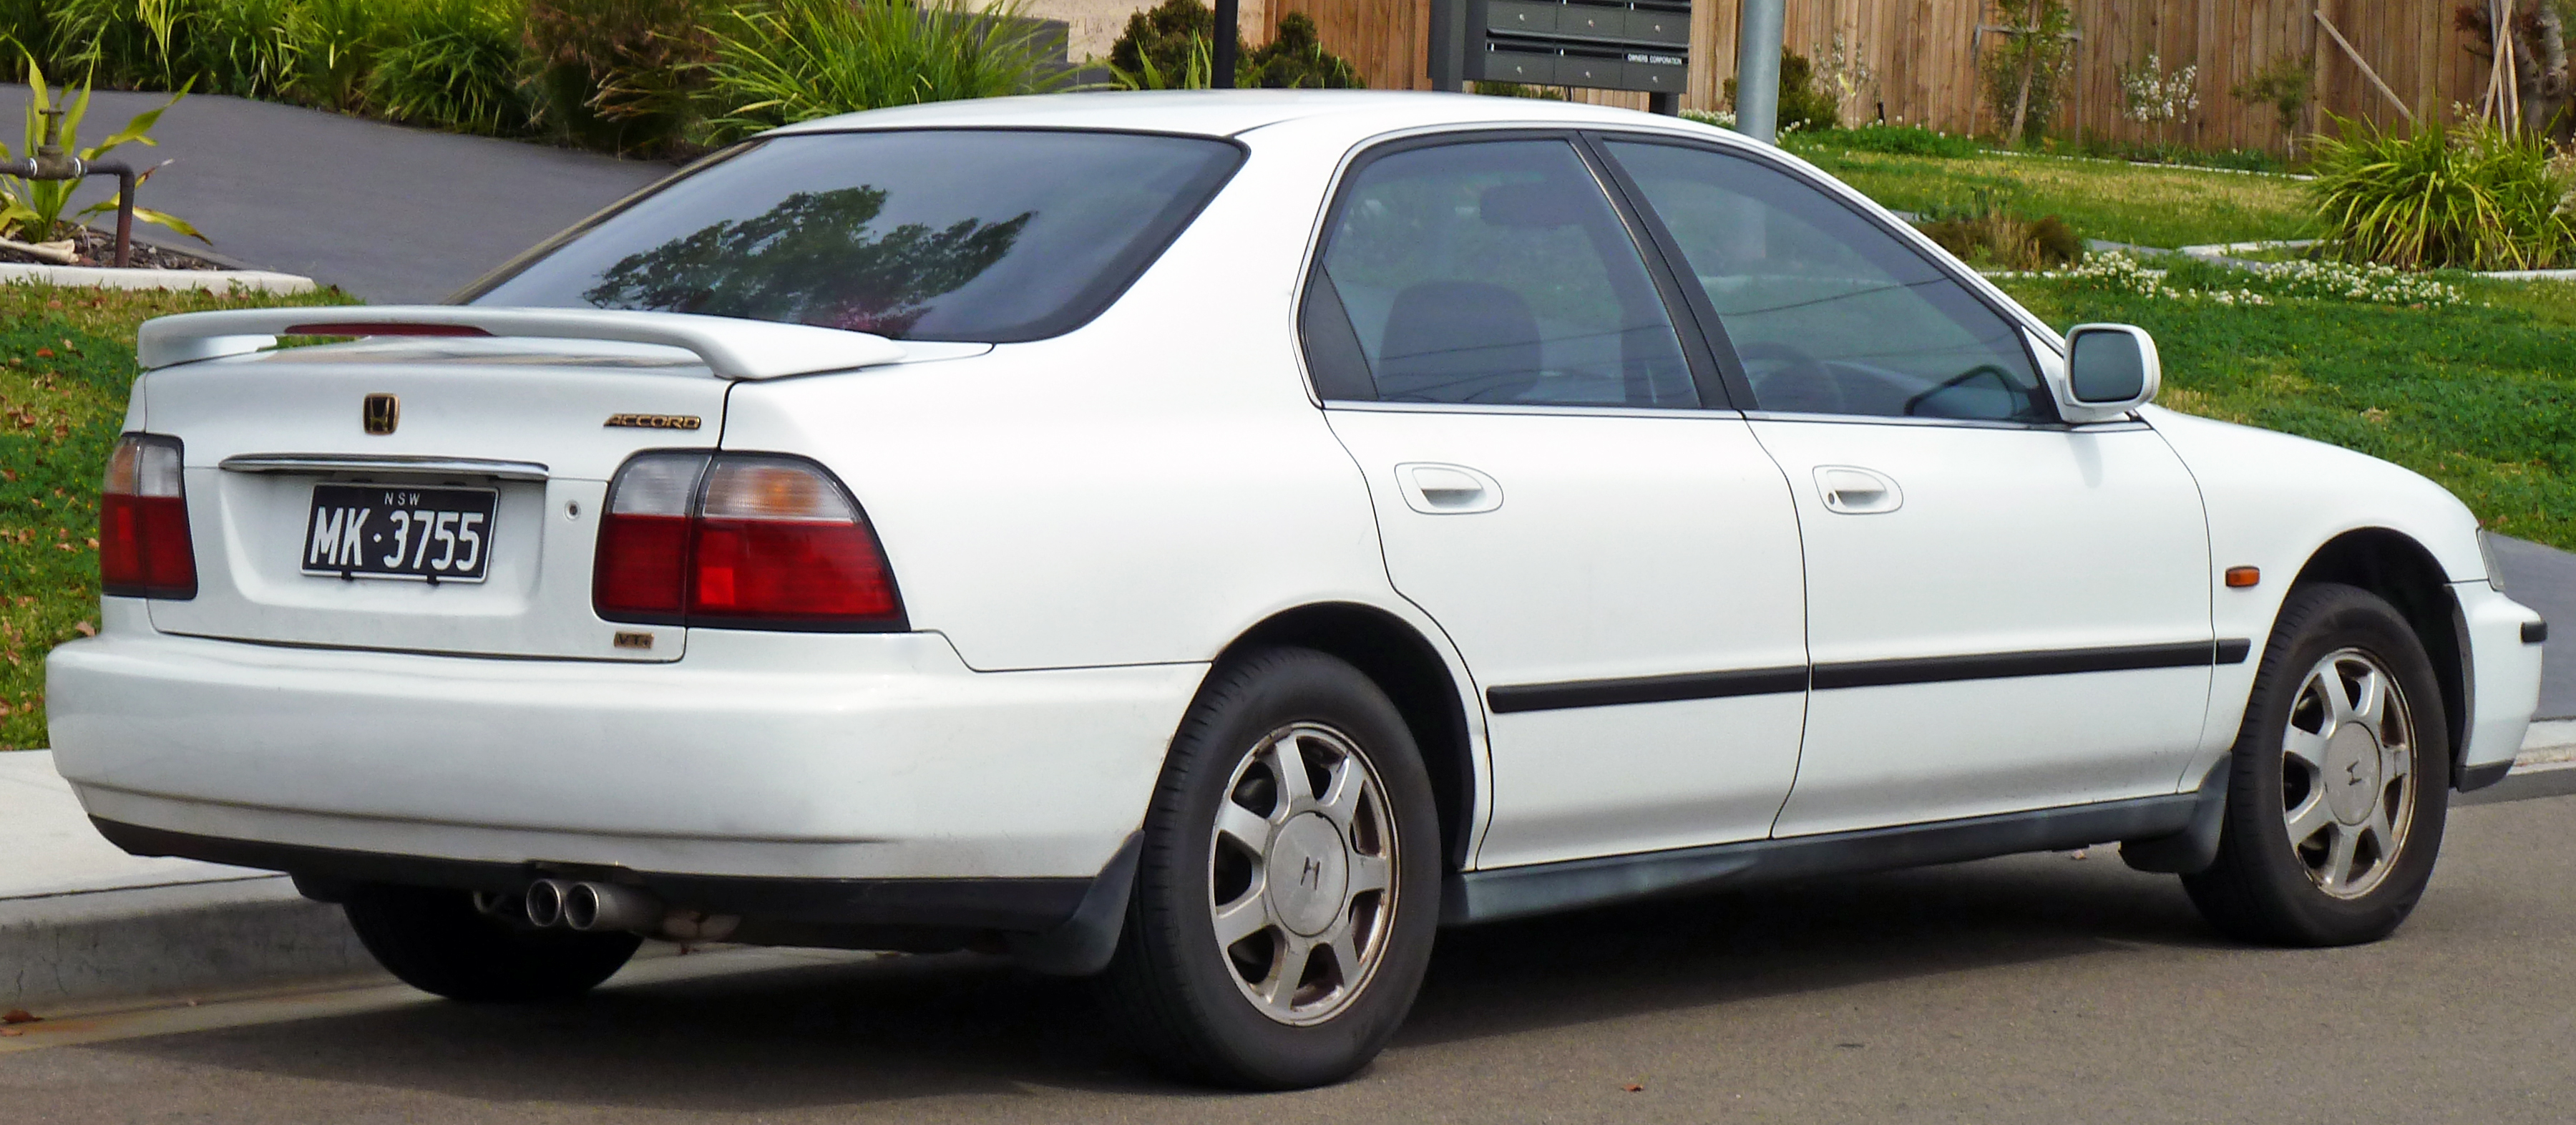 New Honda Accord >> File:1995-1997 Honda Accord VTi sedan 02.jpg - Wikimedia Commons